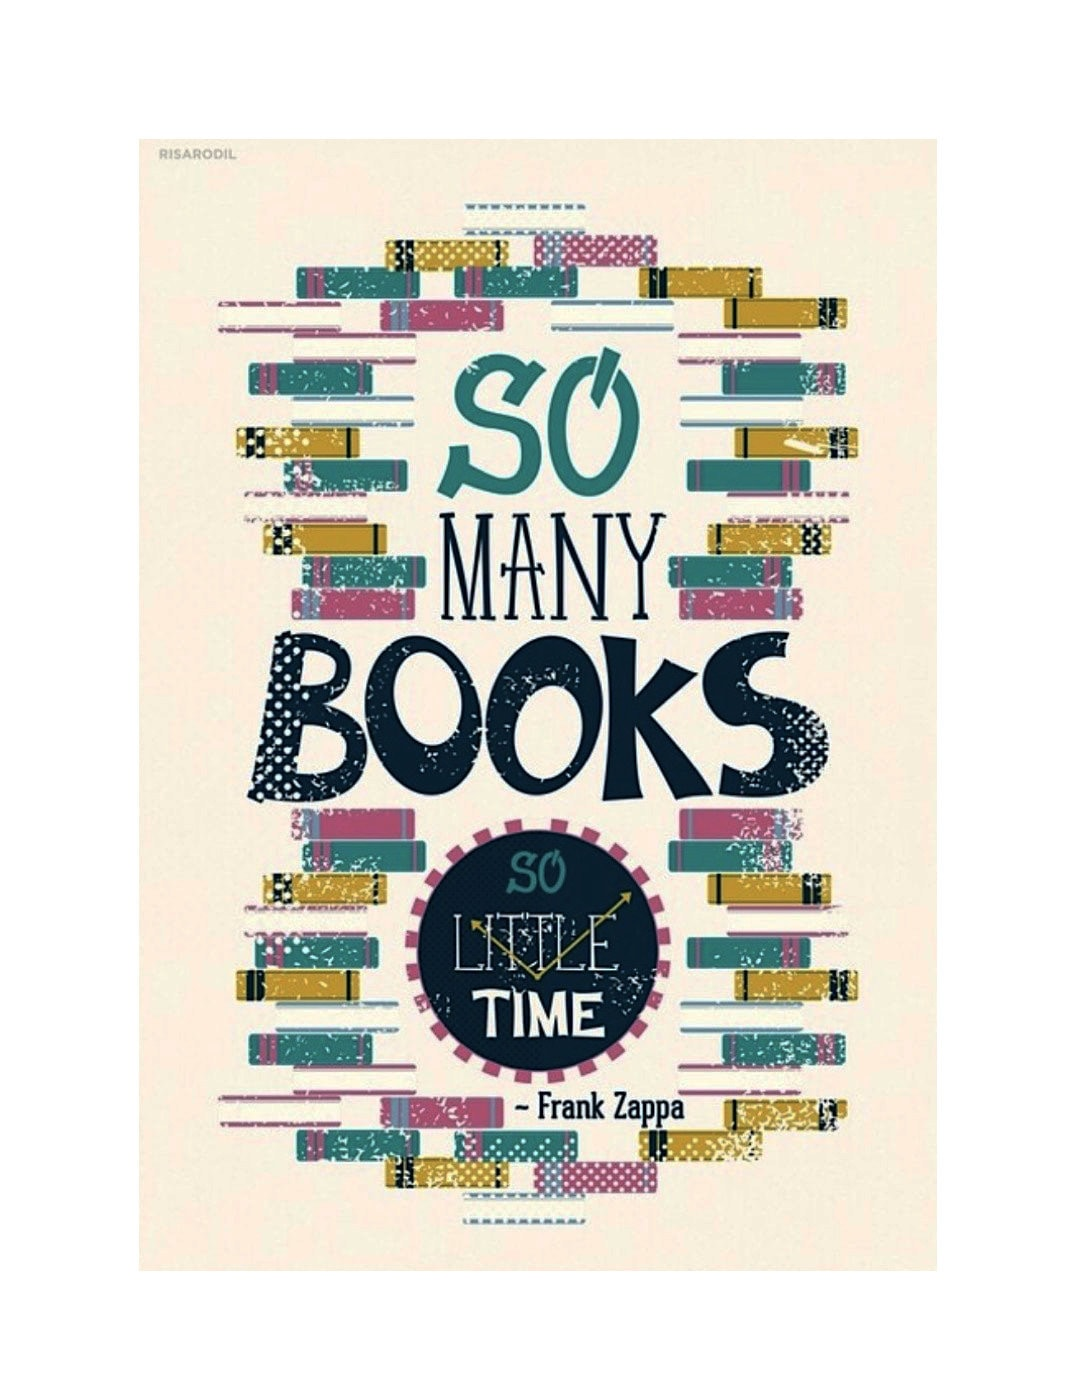 So many books so little time poster by Risa Rodil - best posters